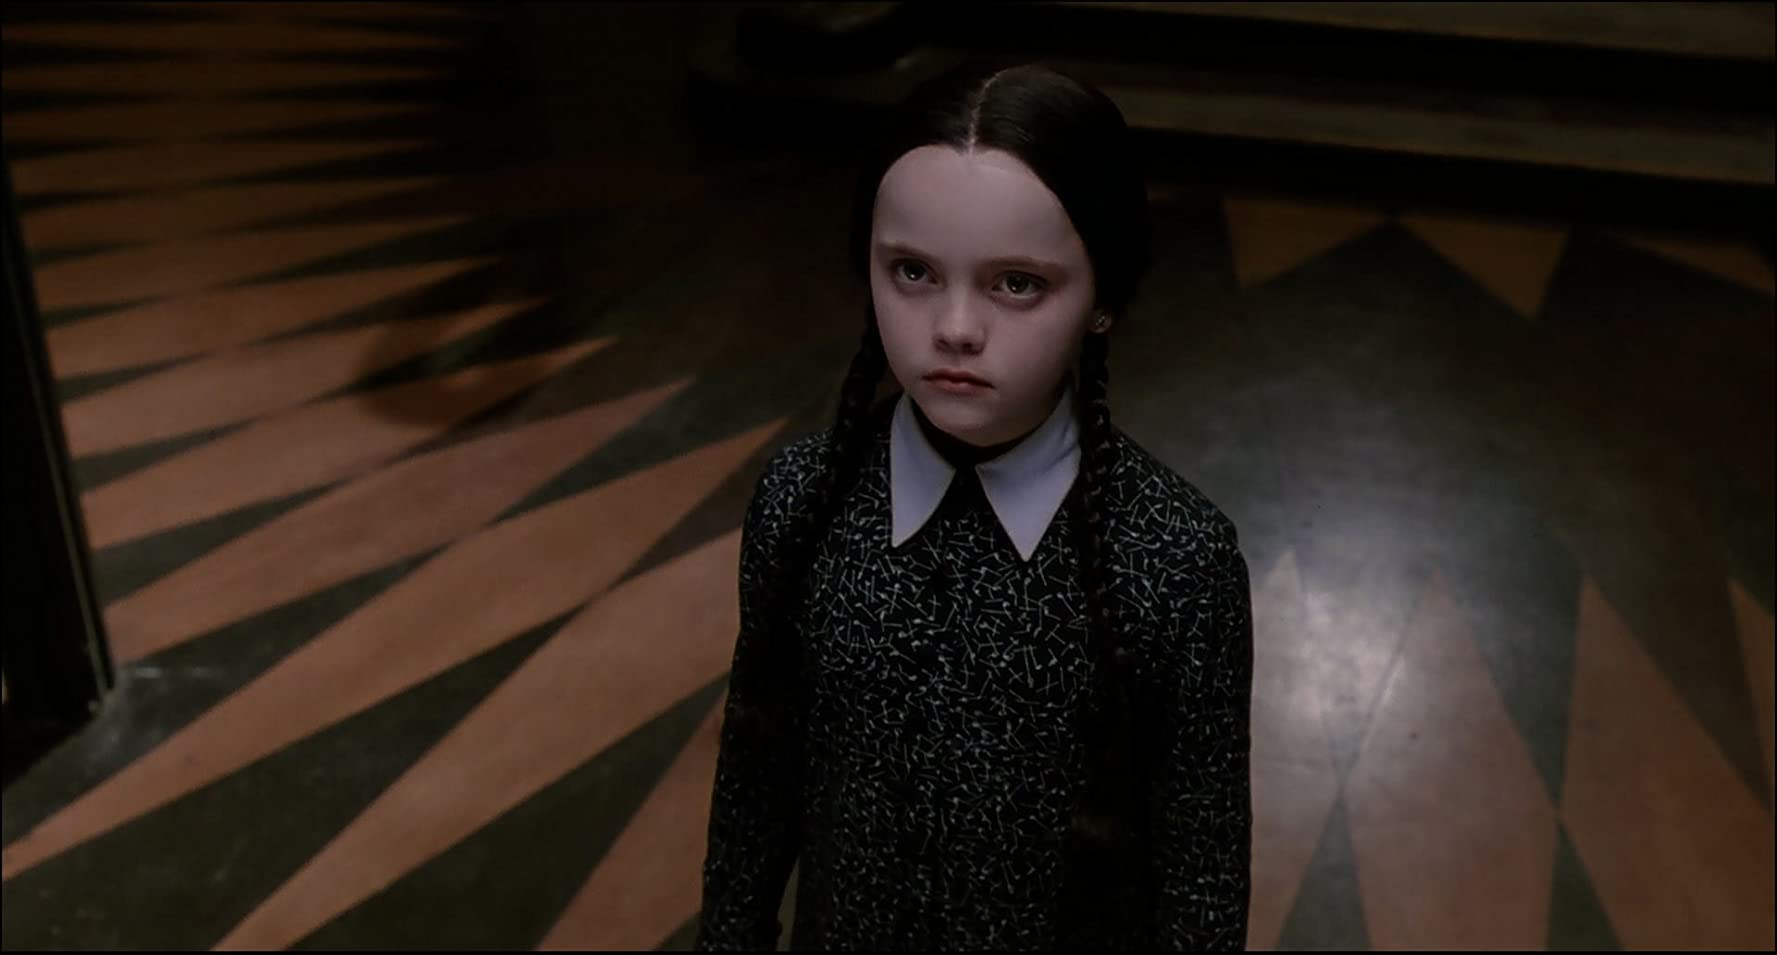 Wednesday (Christina Ricci) in The Addams Family (1991)